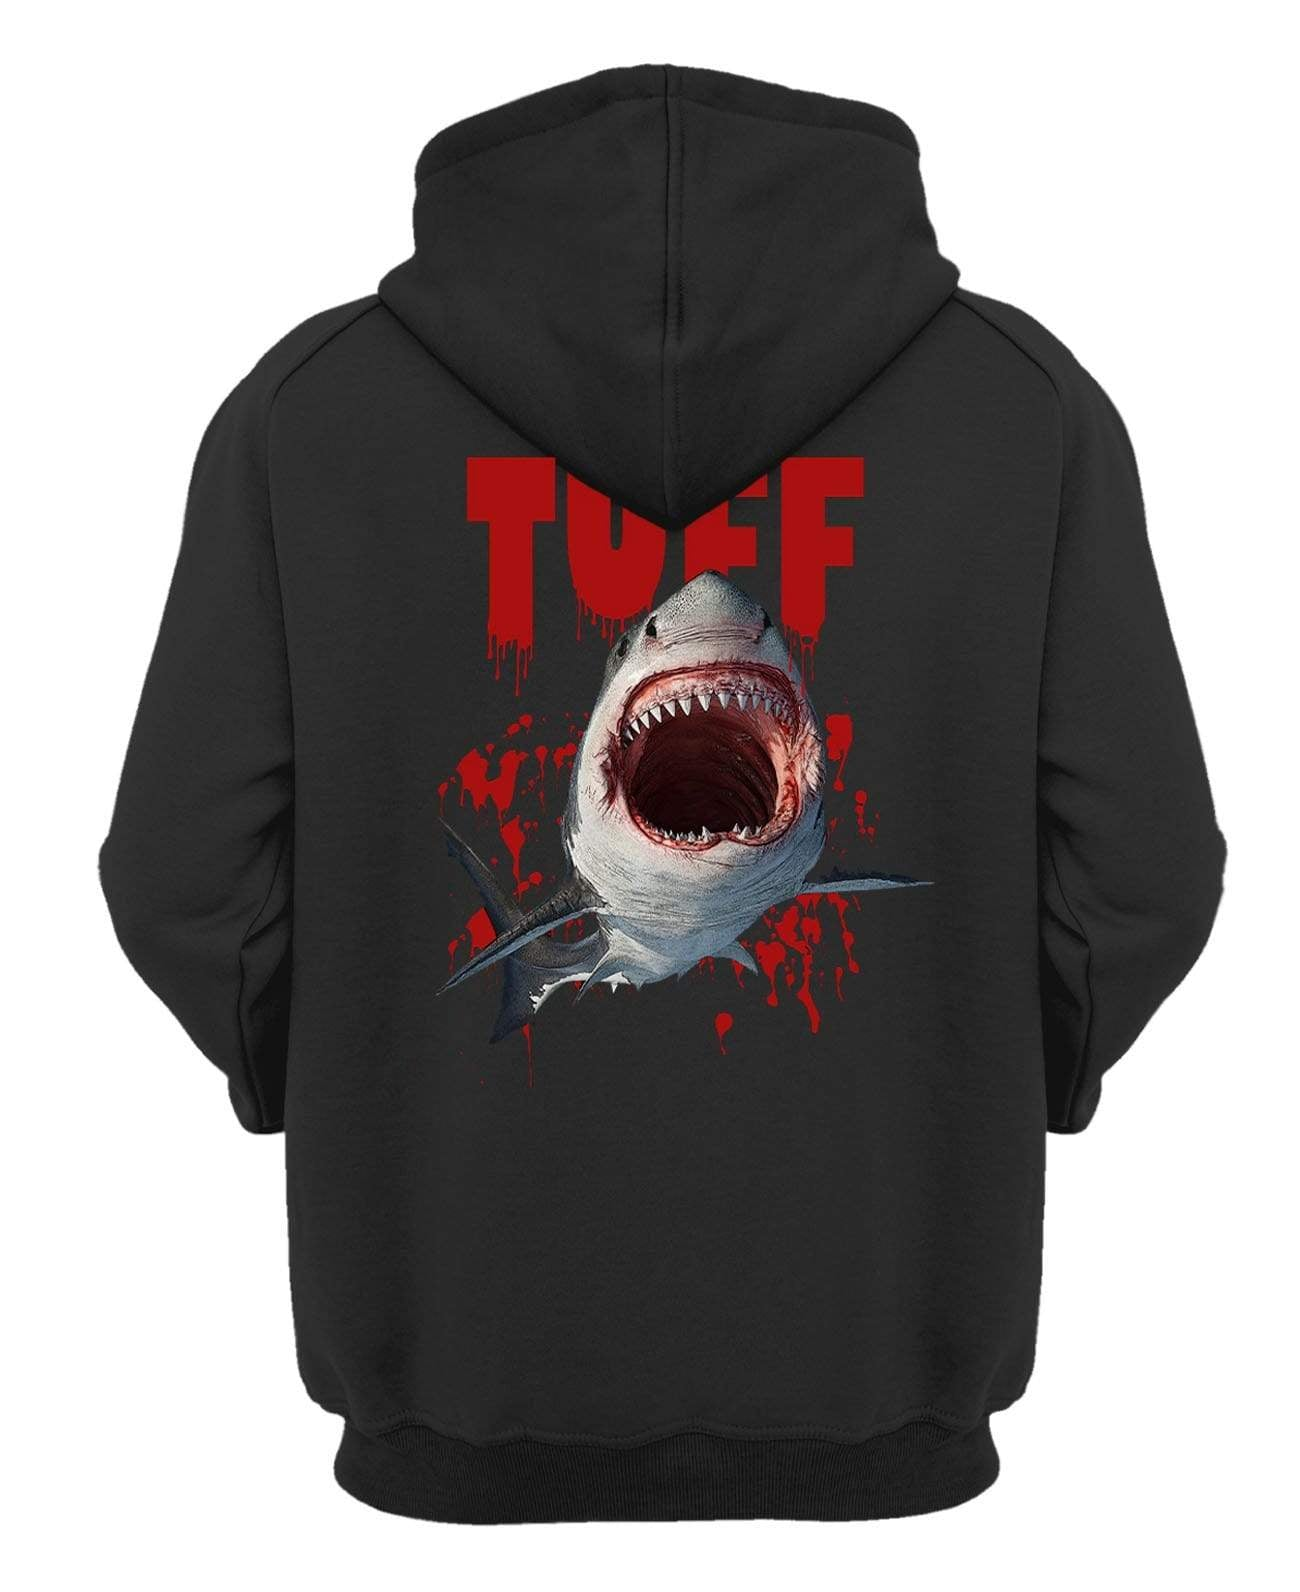 The Great White Hooded Sweatshirt XS / Black TuffWraps.com